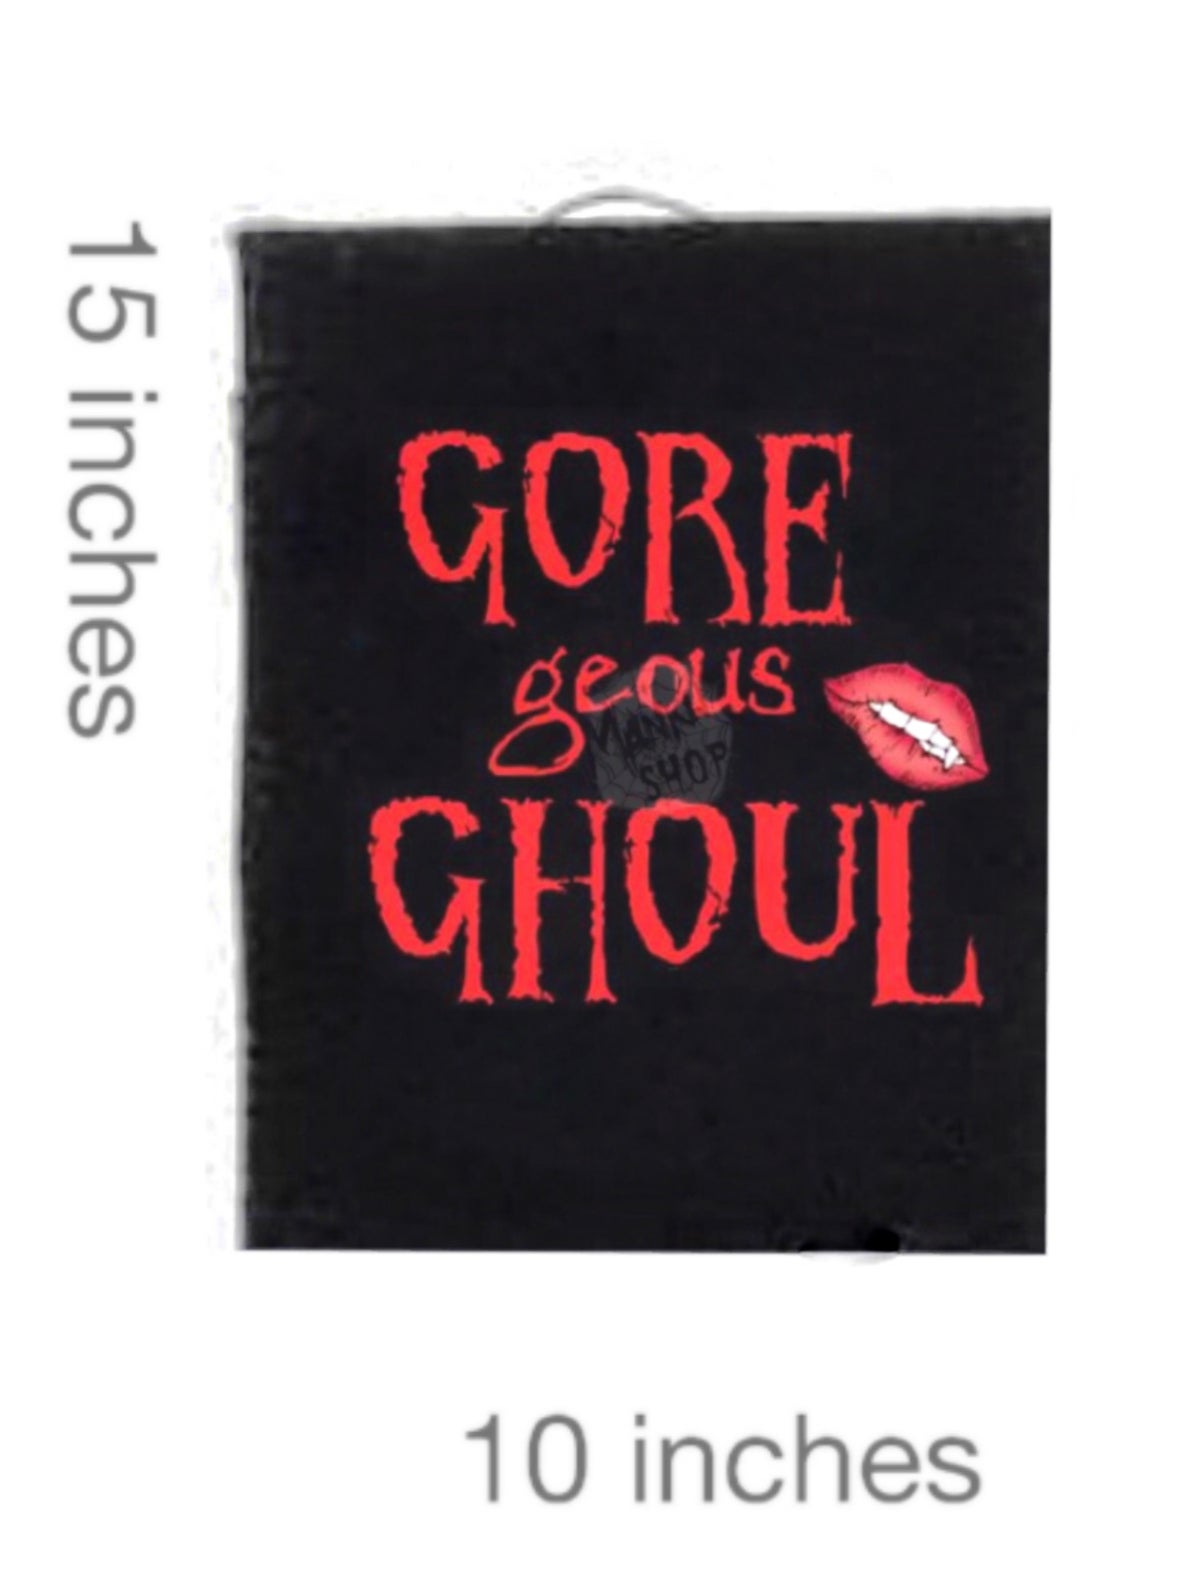 Image of Gore-geous Ghoul Patch